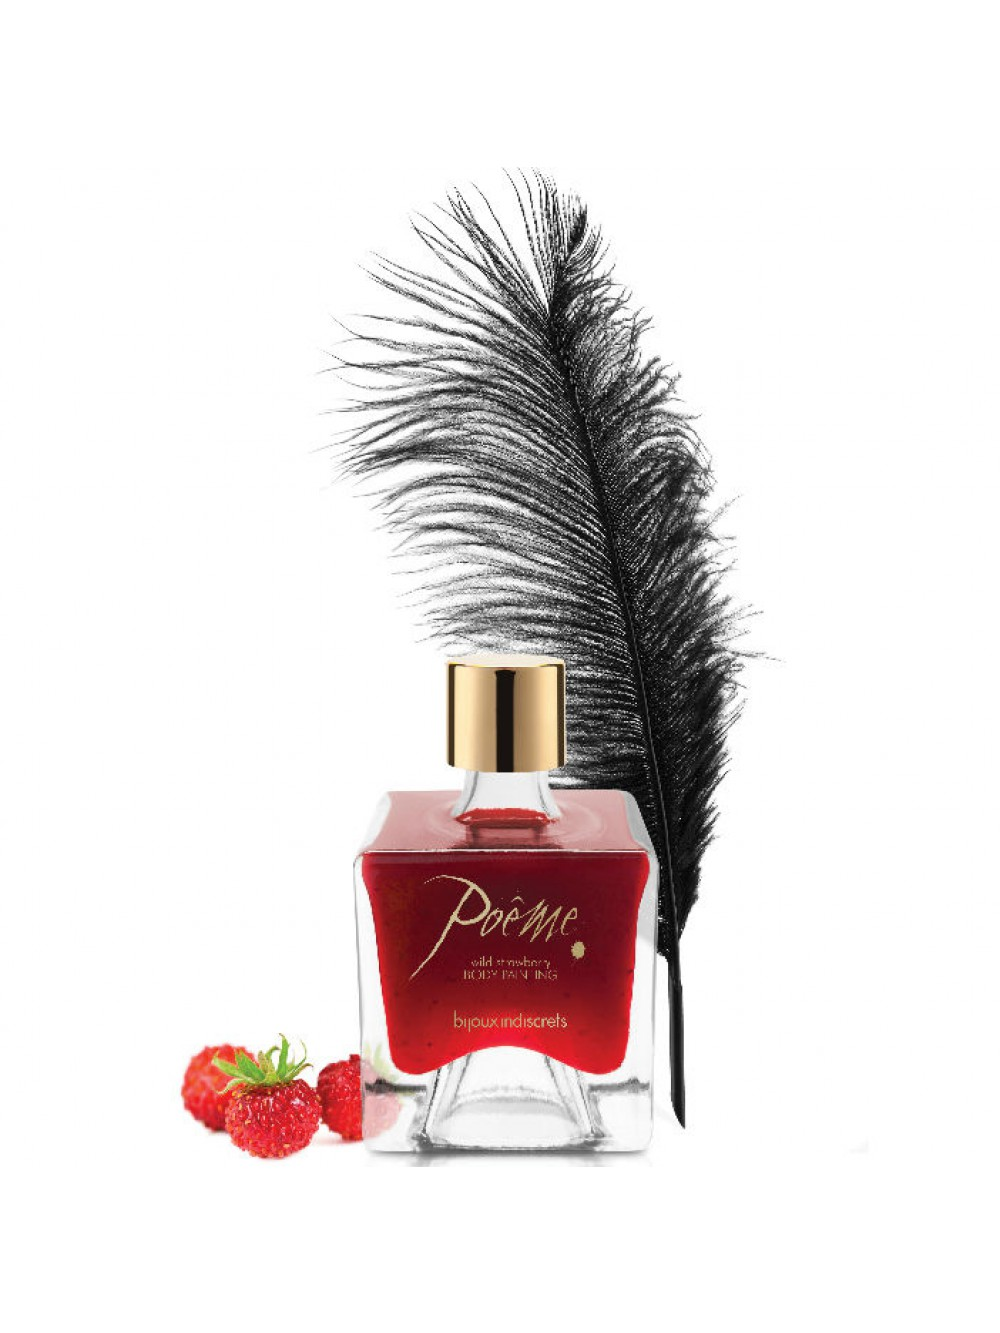 POEME BODY PAINTING WILD STRAWBERRY